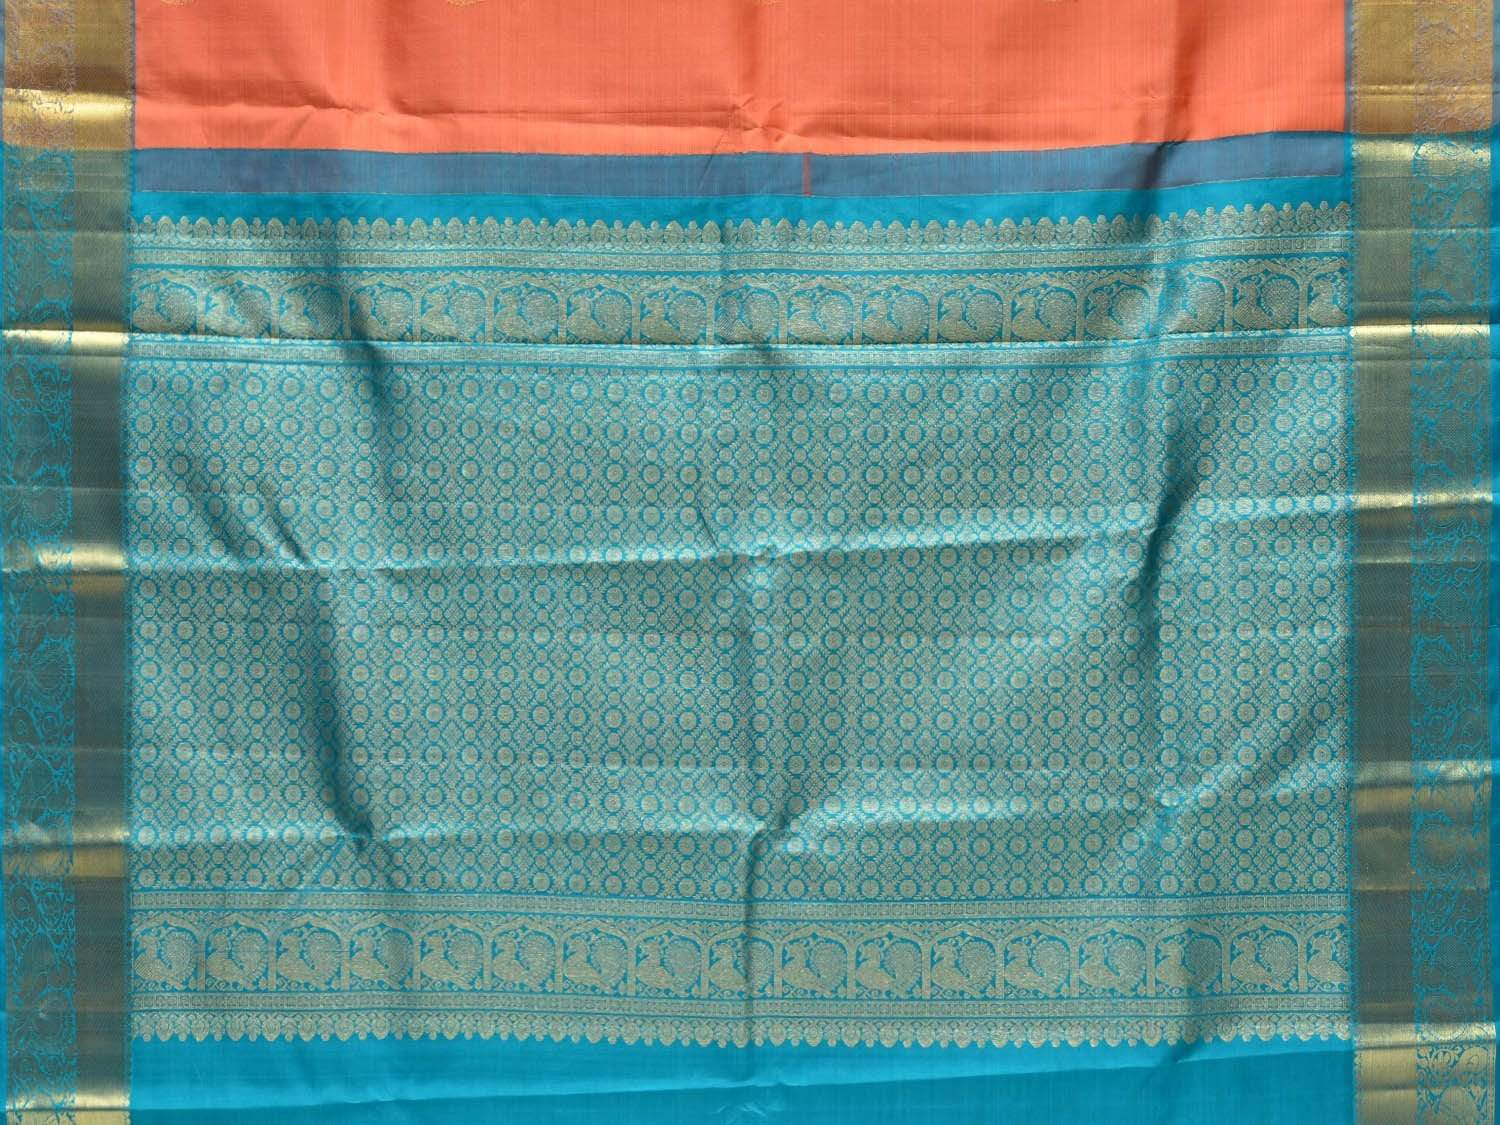 Peach and Blue Kanchipuram Silk Handloom Saree with Body Buta and Border Design k0494